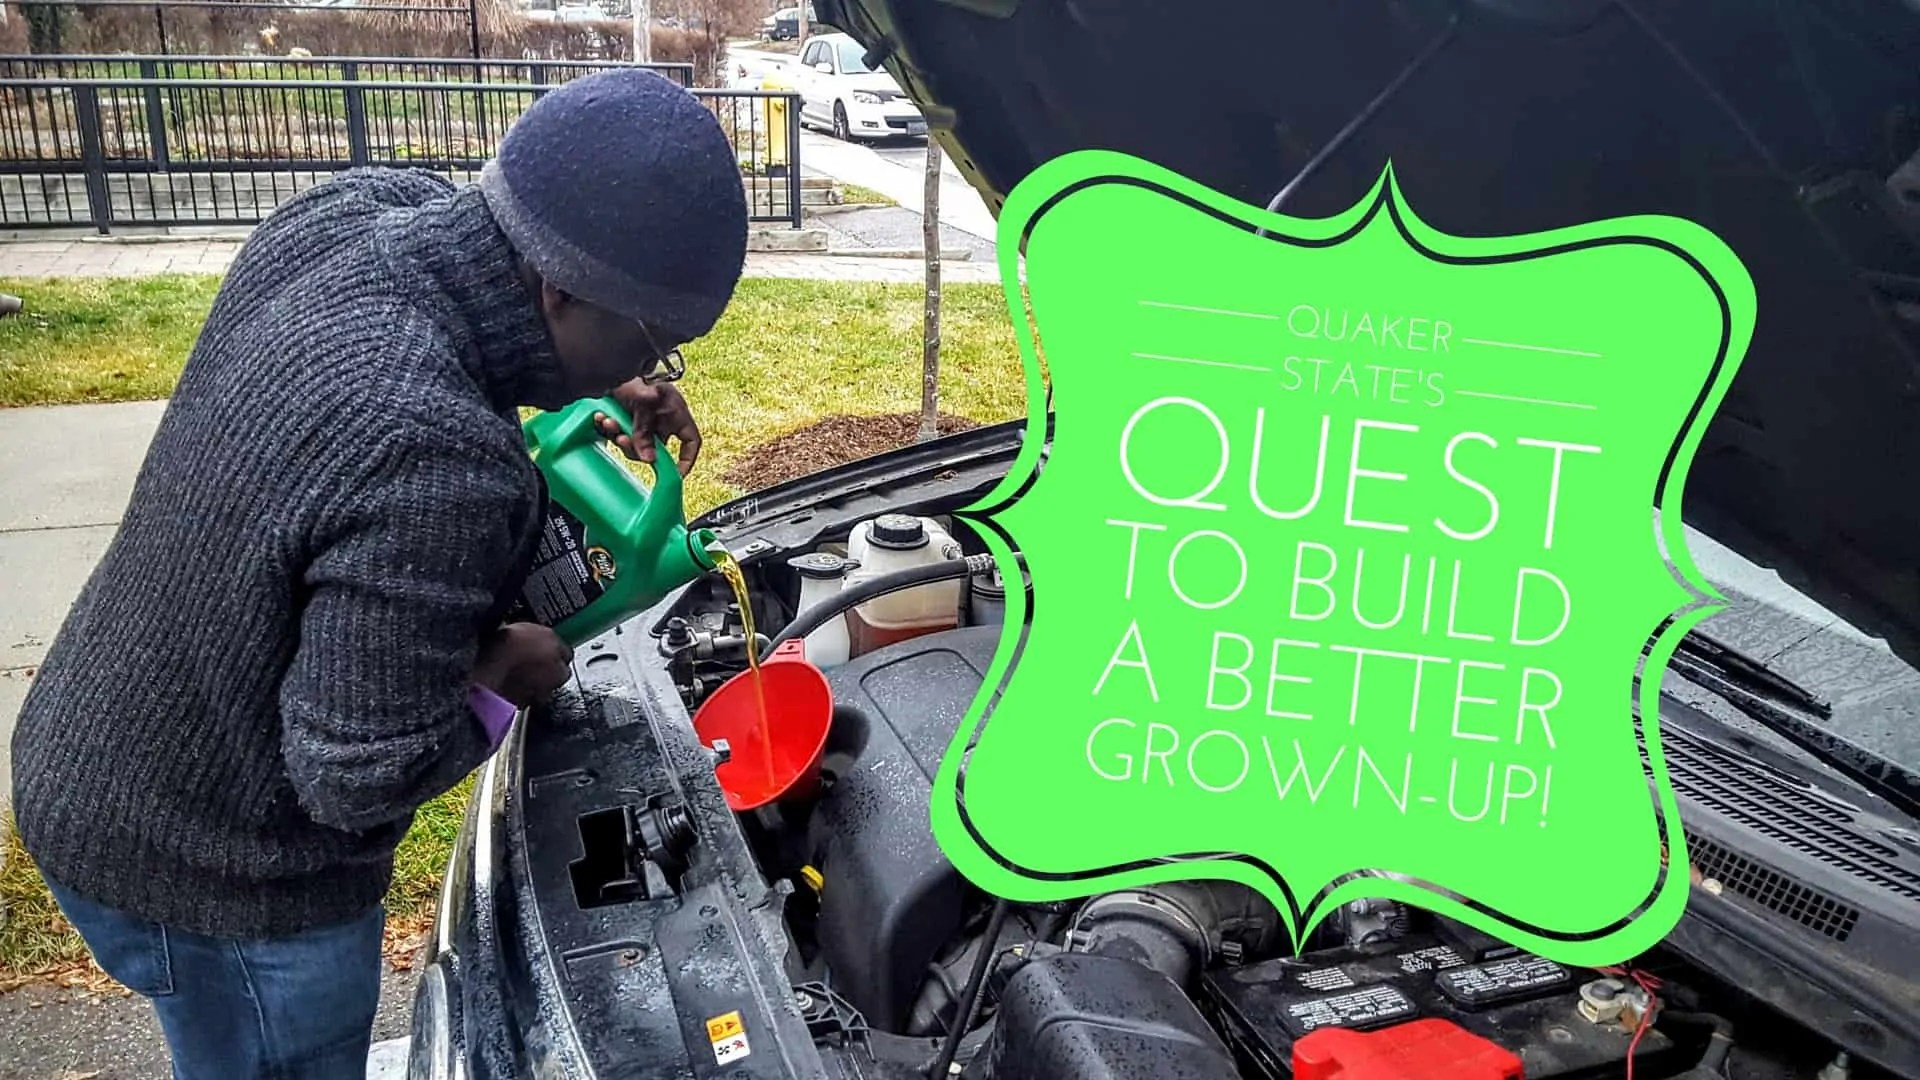 Quaker State's Quest to Build a Better Grown-Up! (Featured Image)